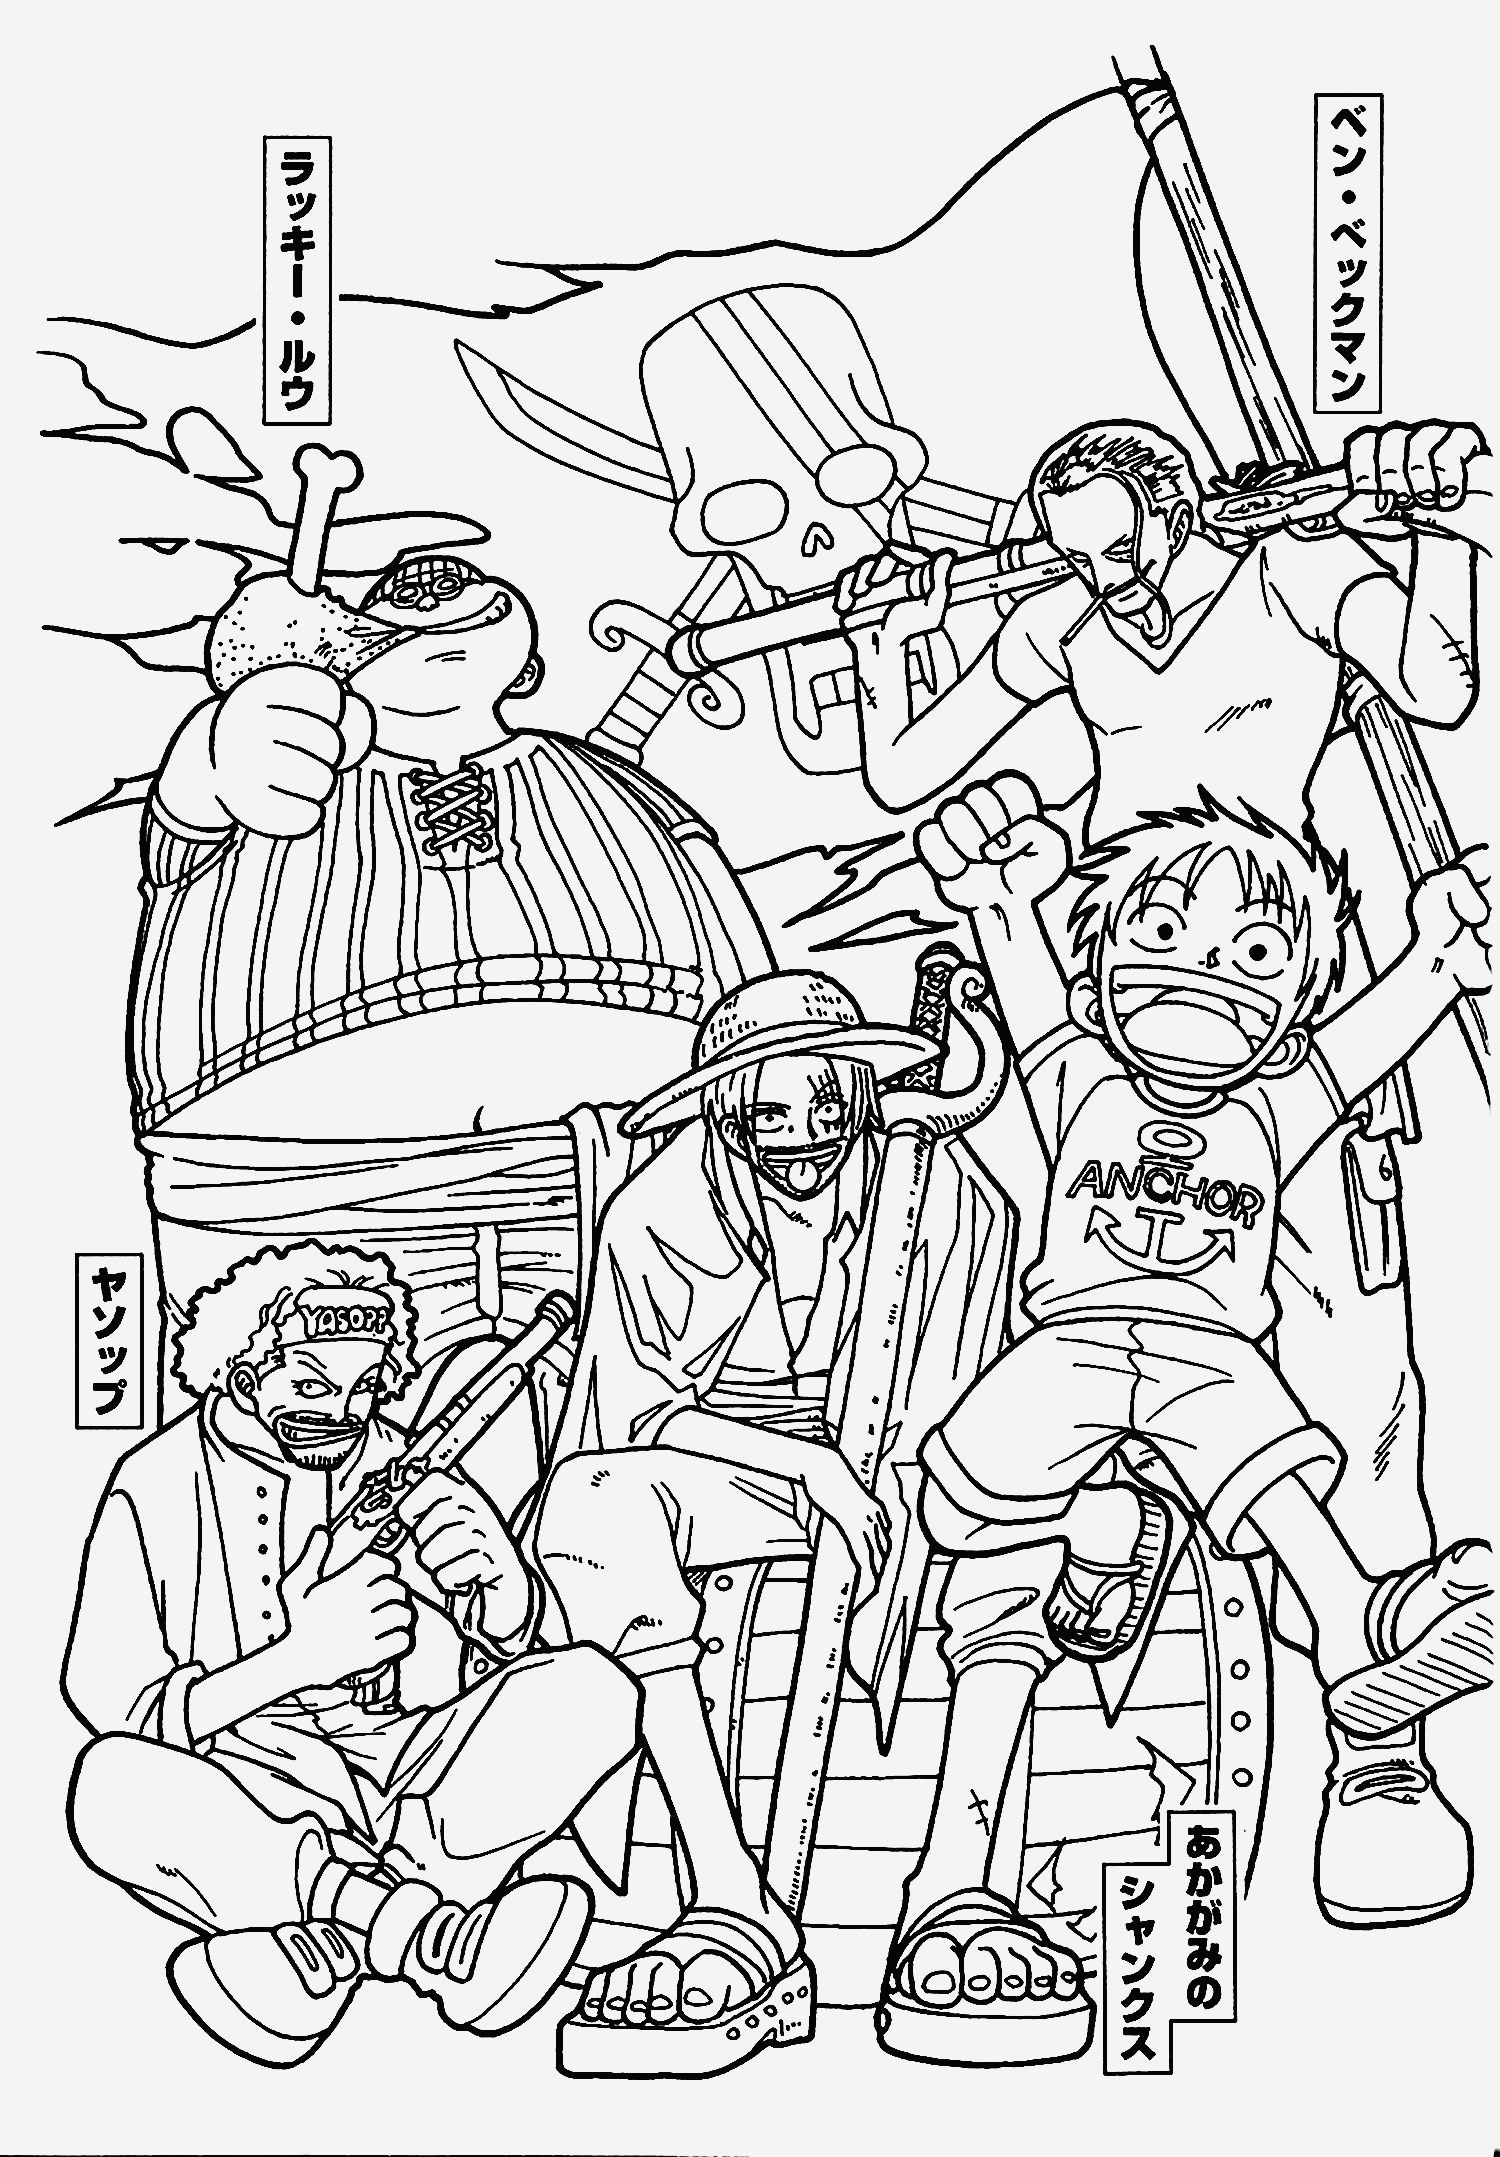 Coloriage One Piece à Imprimer Beautiful E Piece for Kids E Piece Kids Coloring Pages Of Coloriage One Piece à Imprimer